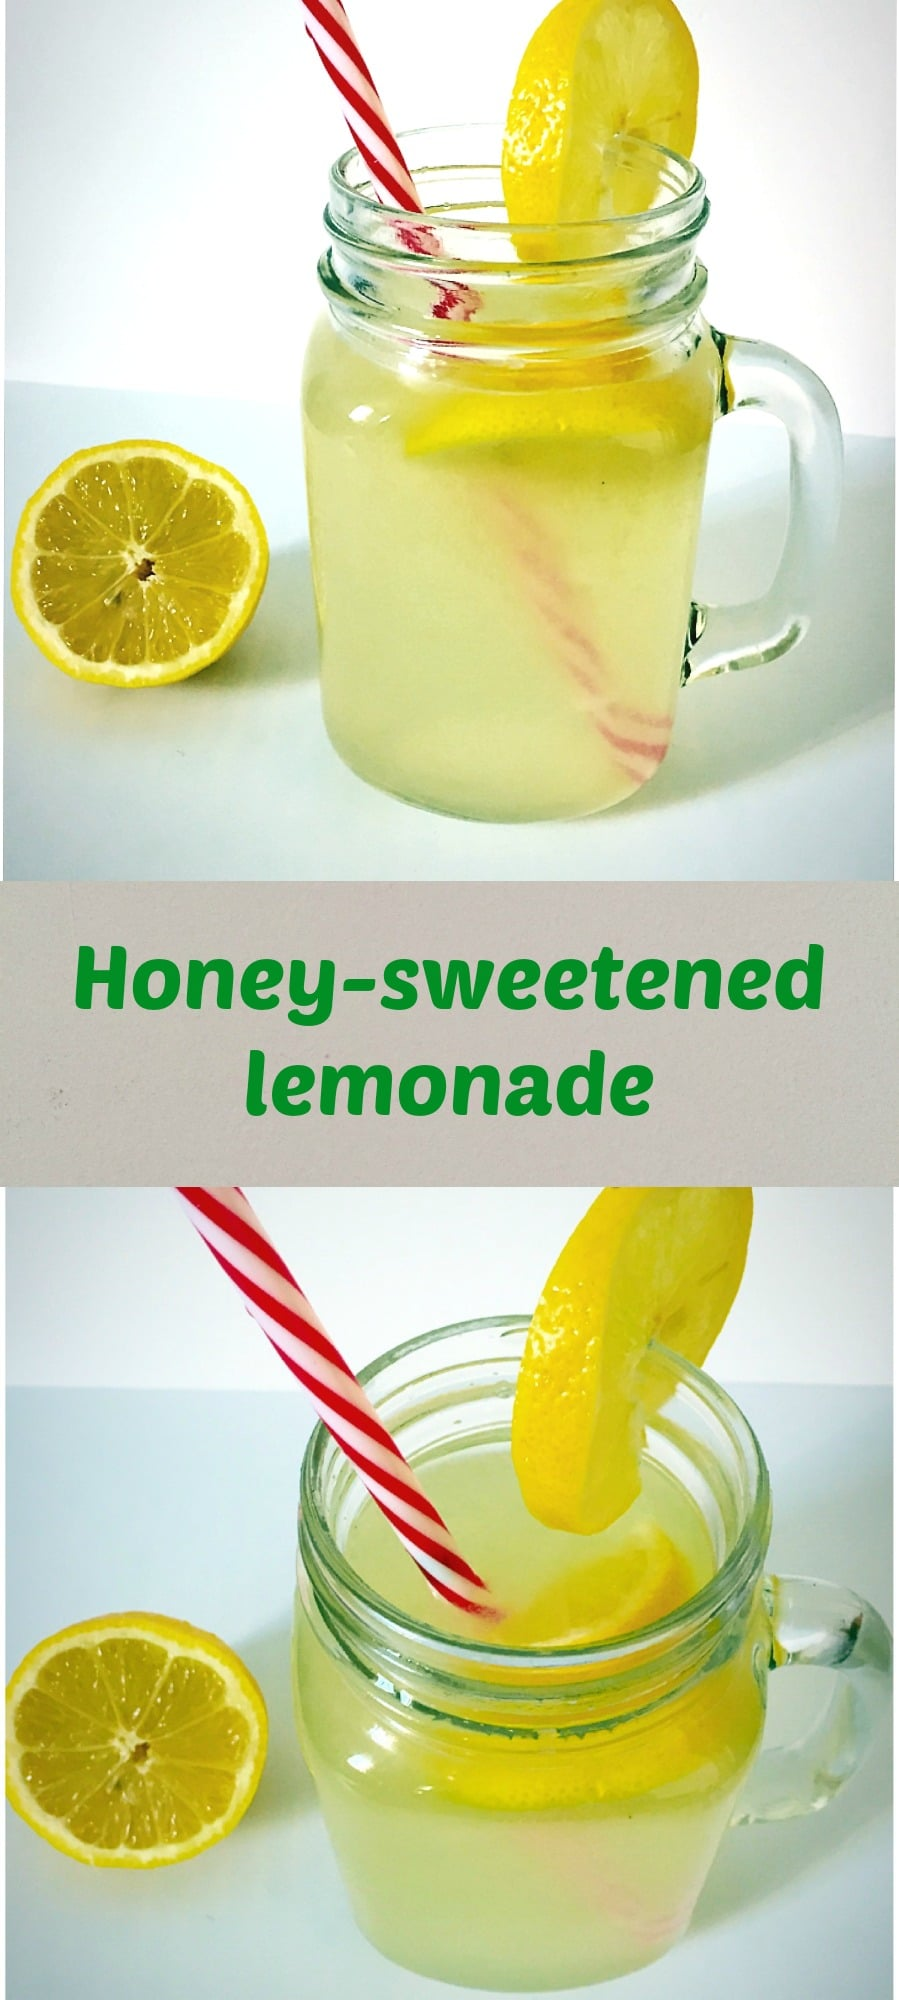 Honey-sweetened lemonade